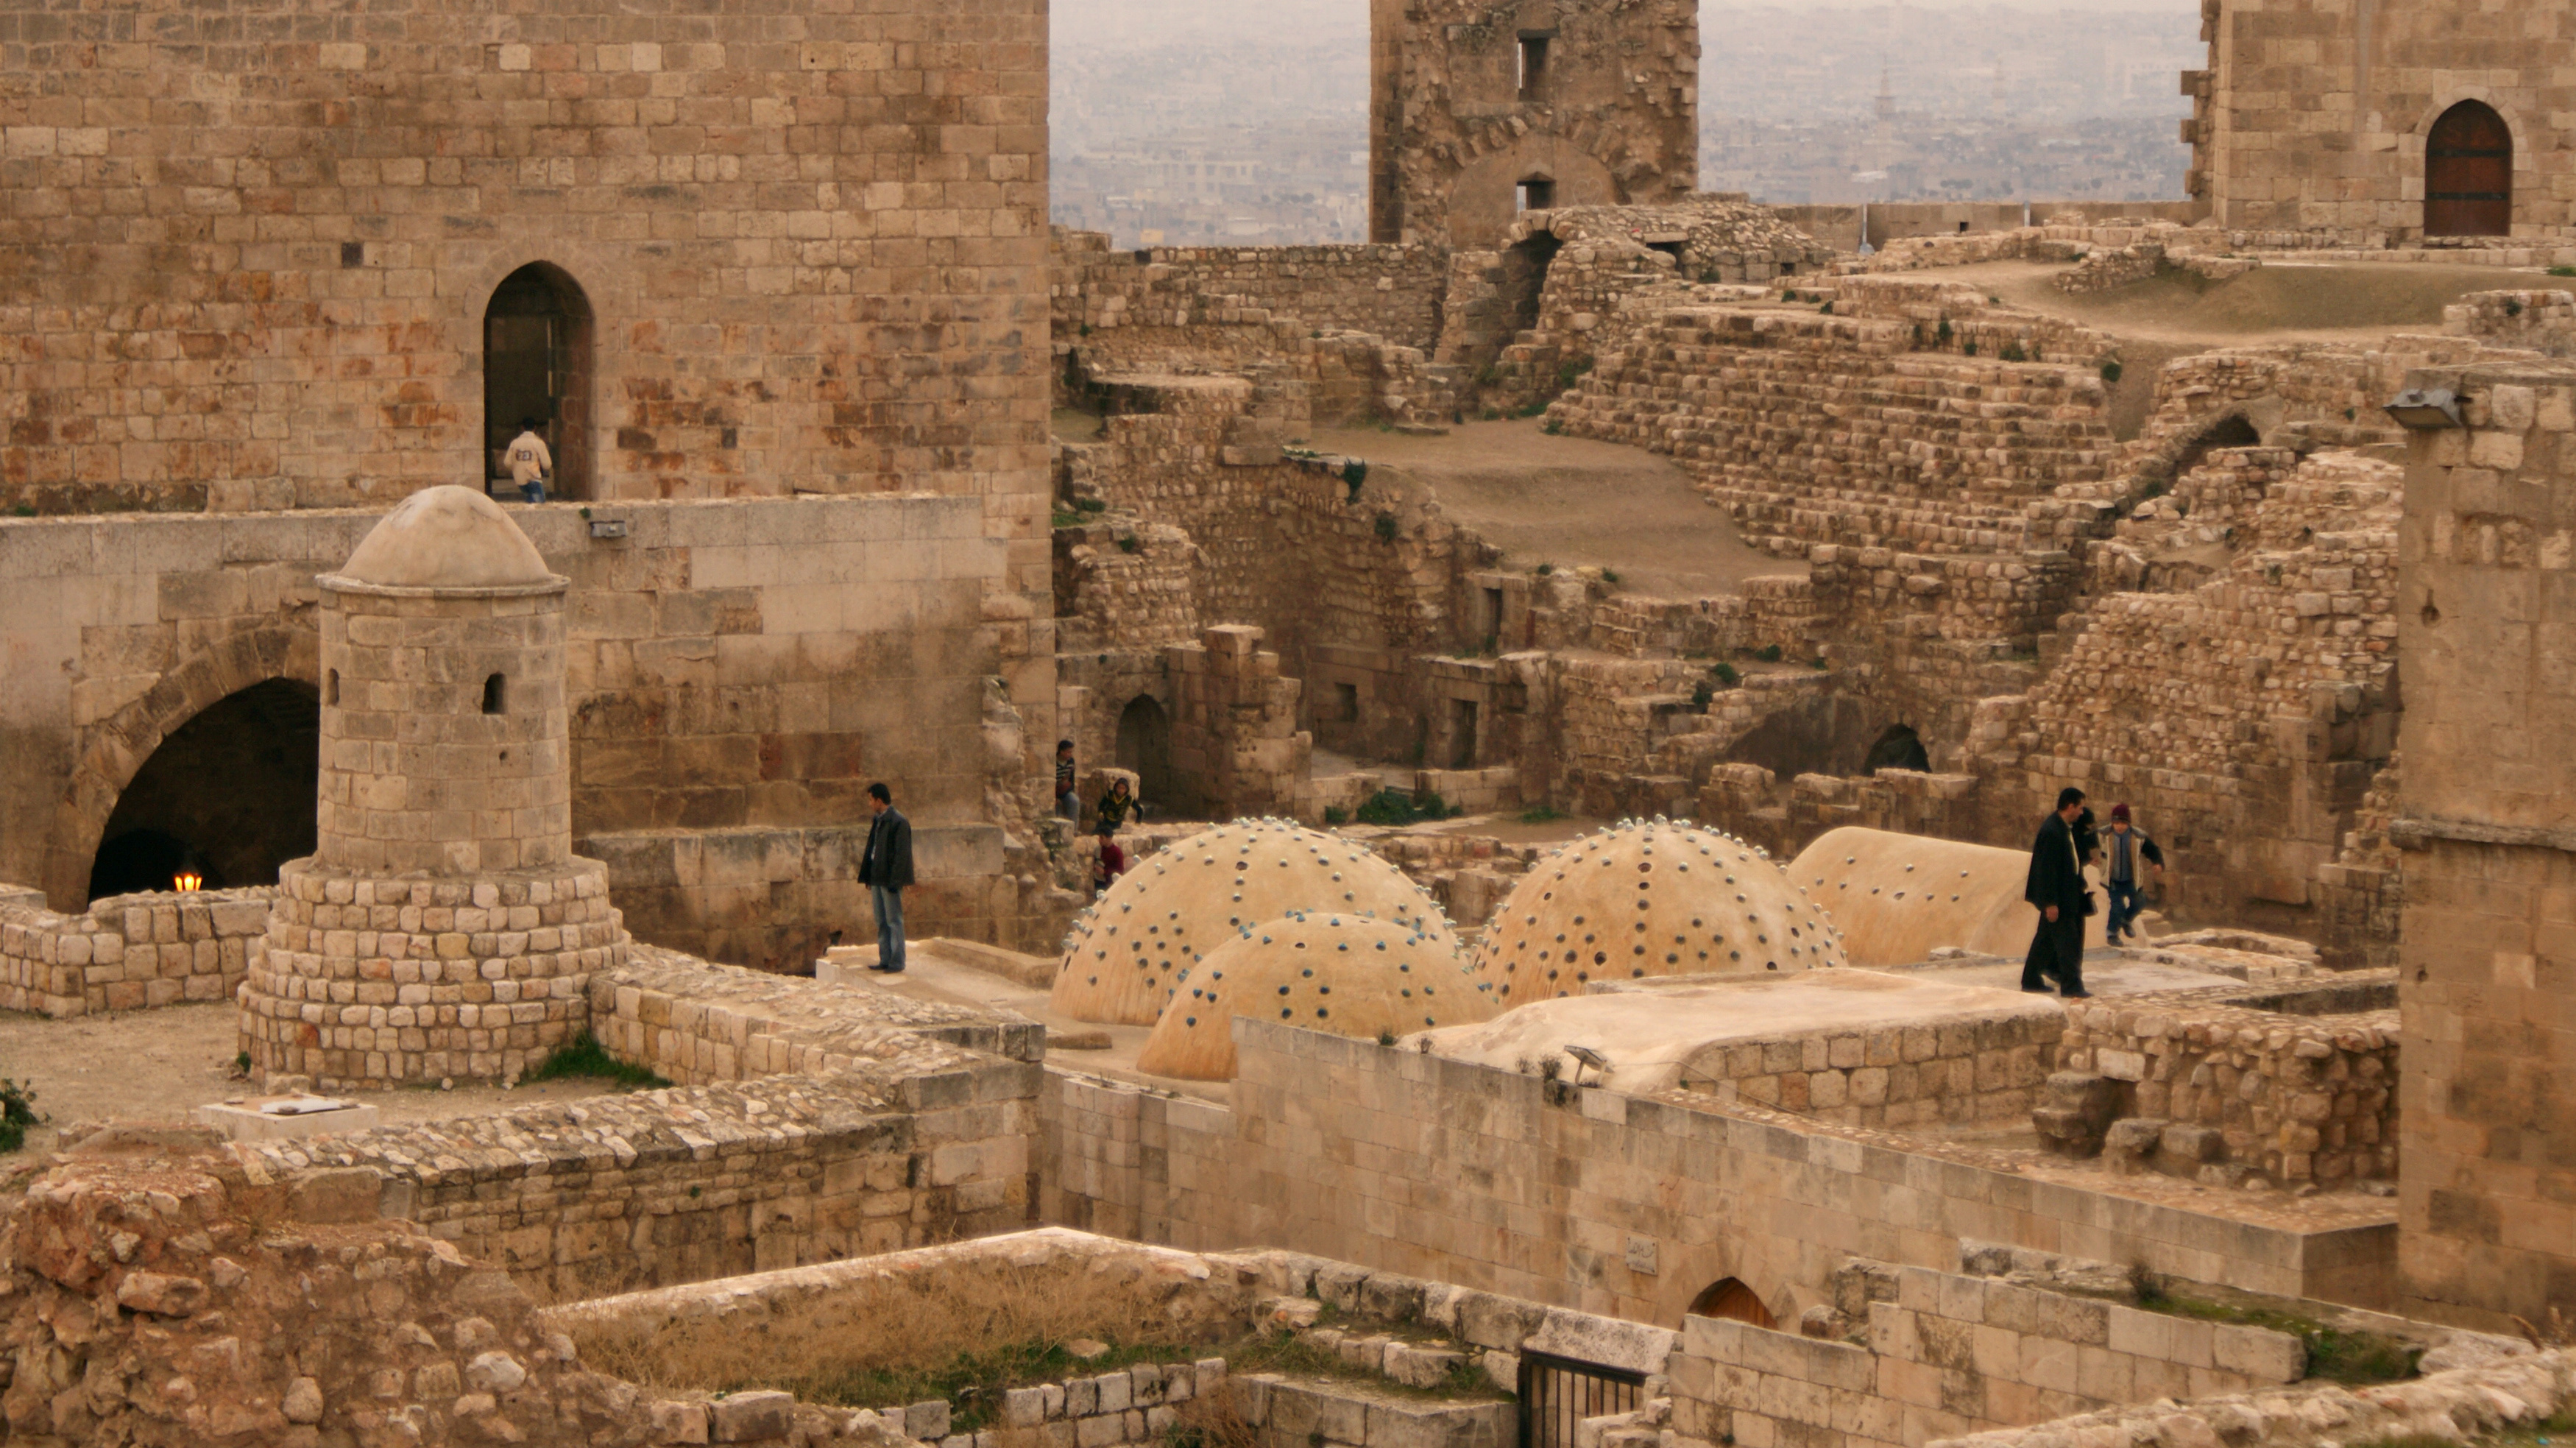 People tour Aleppo's historic citadel, one of the oldest known castles in the world, on Dec. 11, 2009. Photo by Khalil Ashawi/Reuters